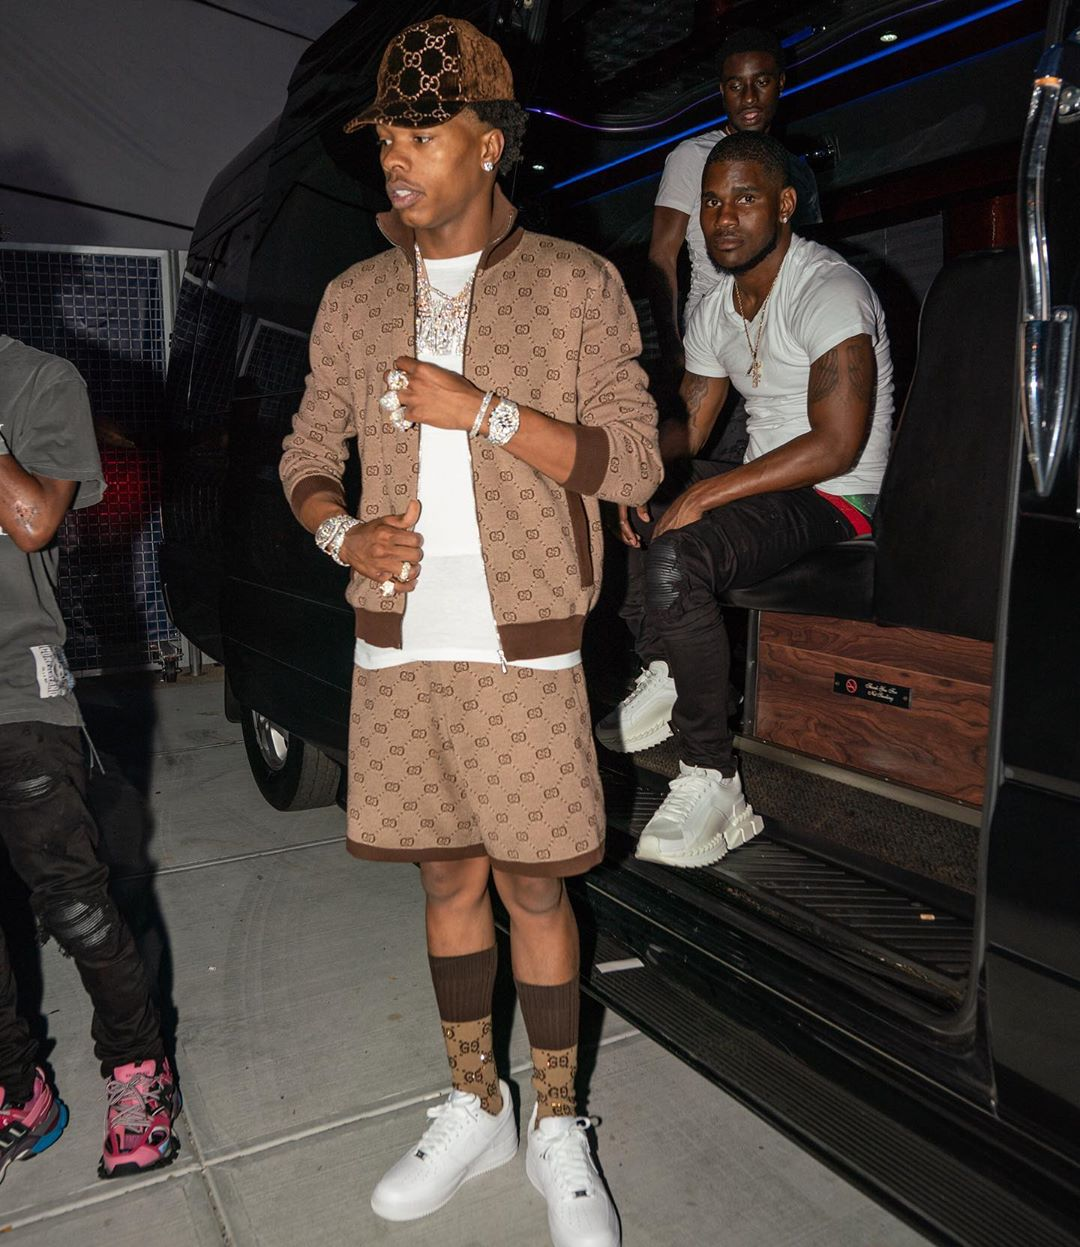 SPOTTED: Lil Baby in All-Gucci-Everything Ensemble